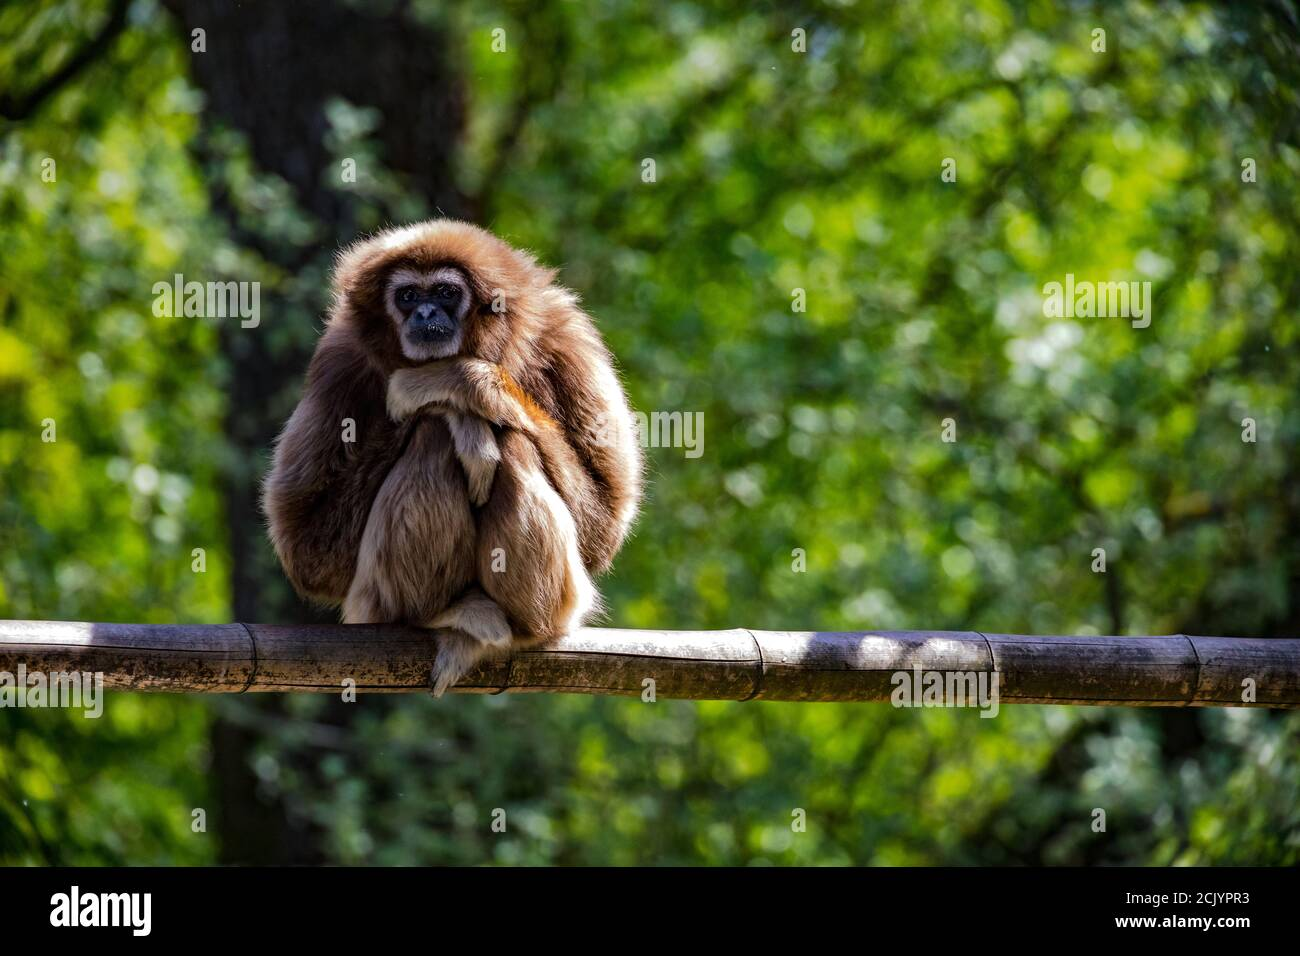 An intelligent capuchin monkey who poses as the thinker sitting on a branch Stock Photo